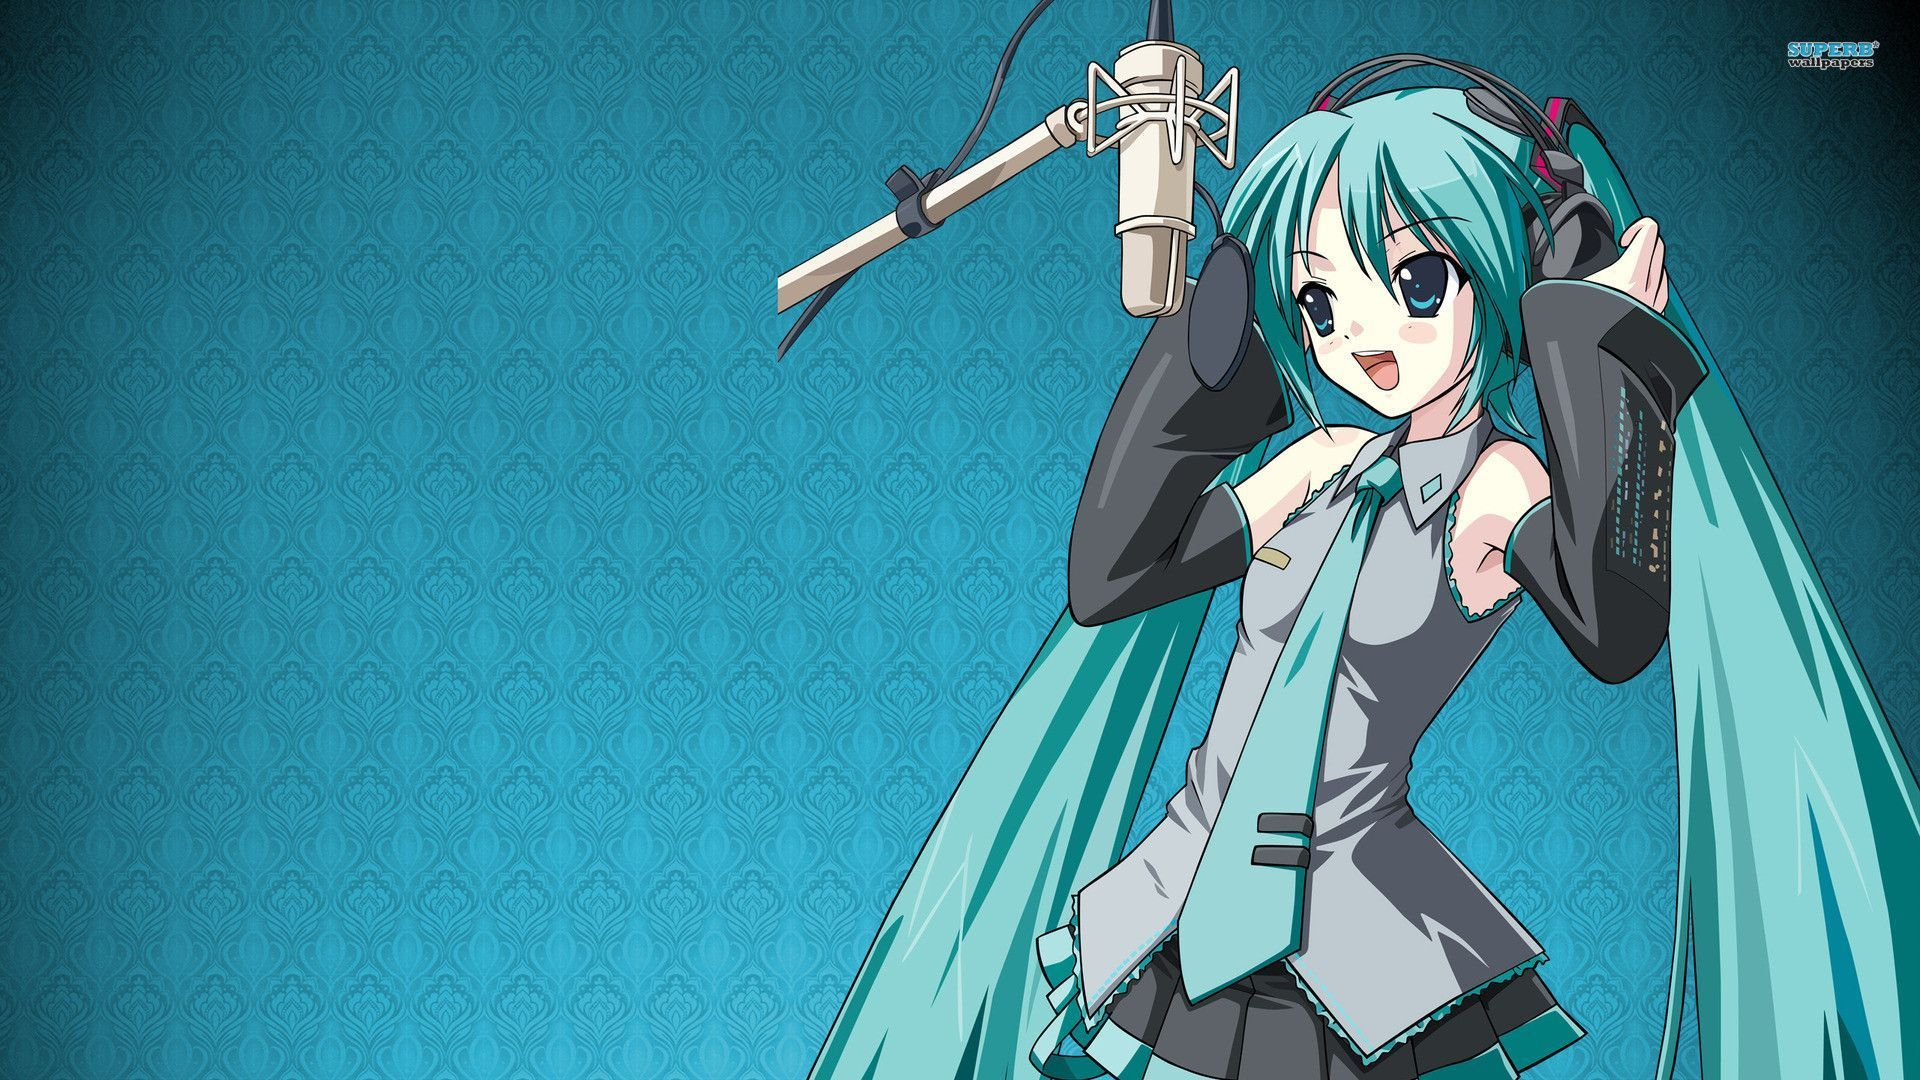 Wallpaper&#39-s Collection: ?Hatsune Miku Wallpapers?